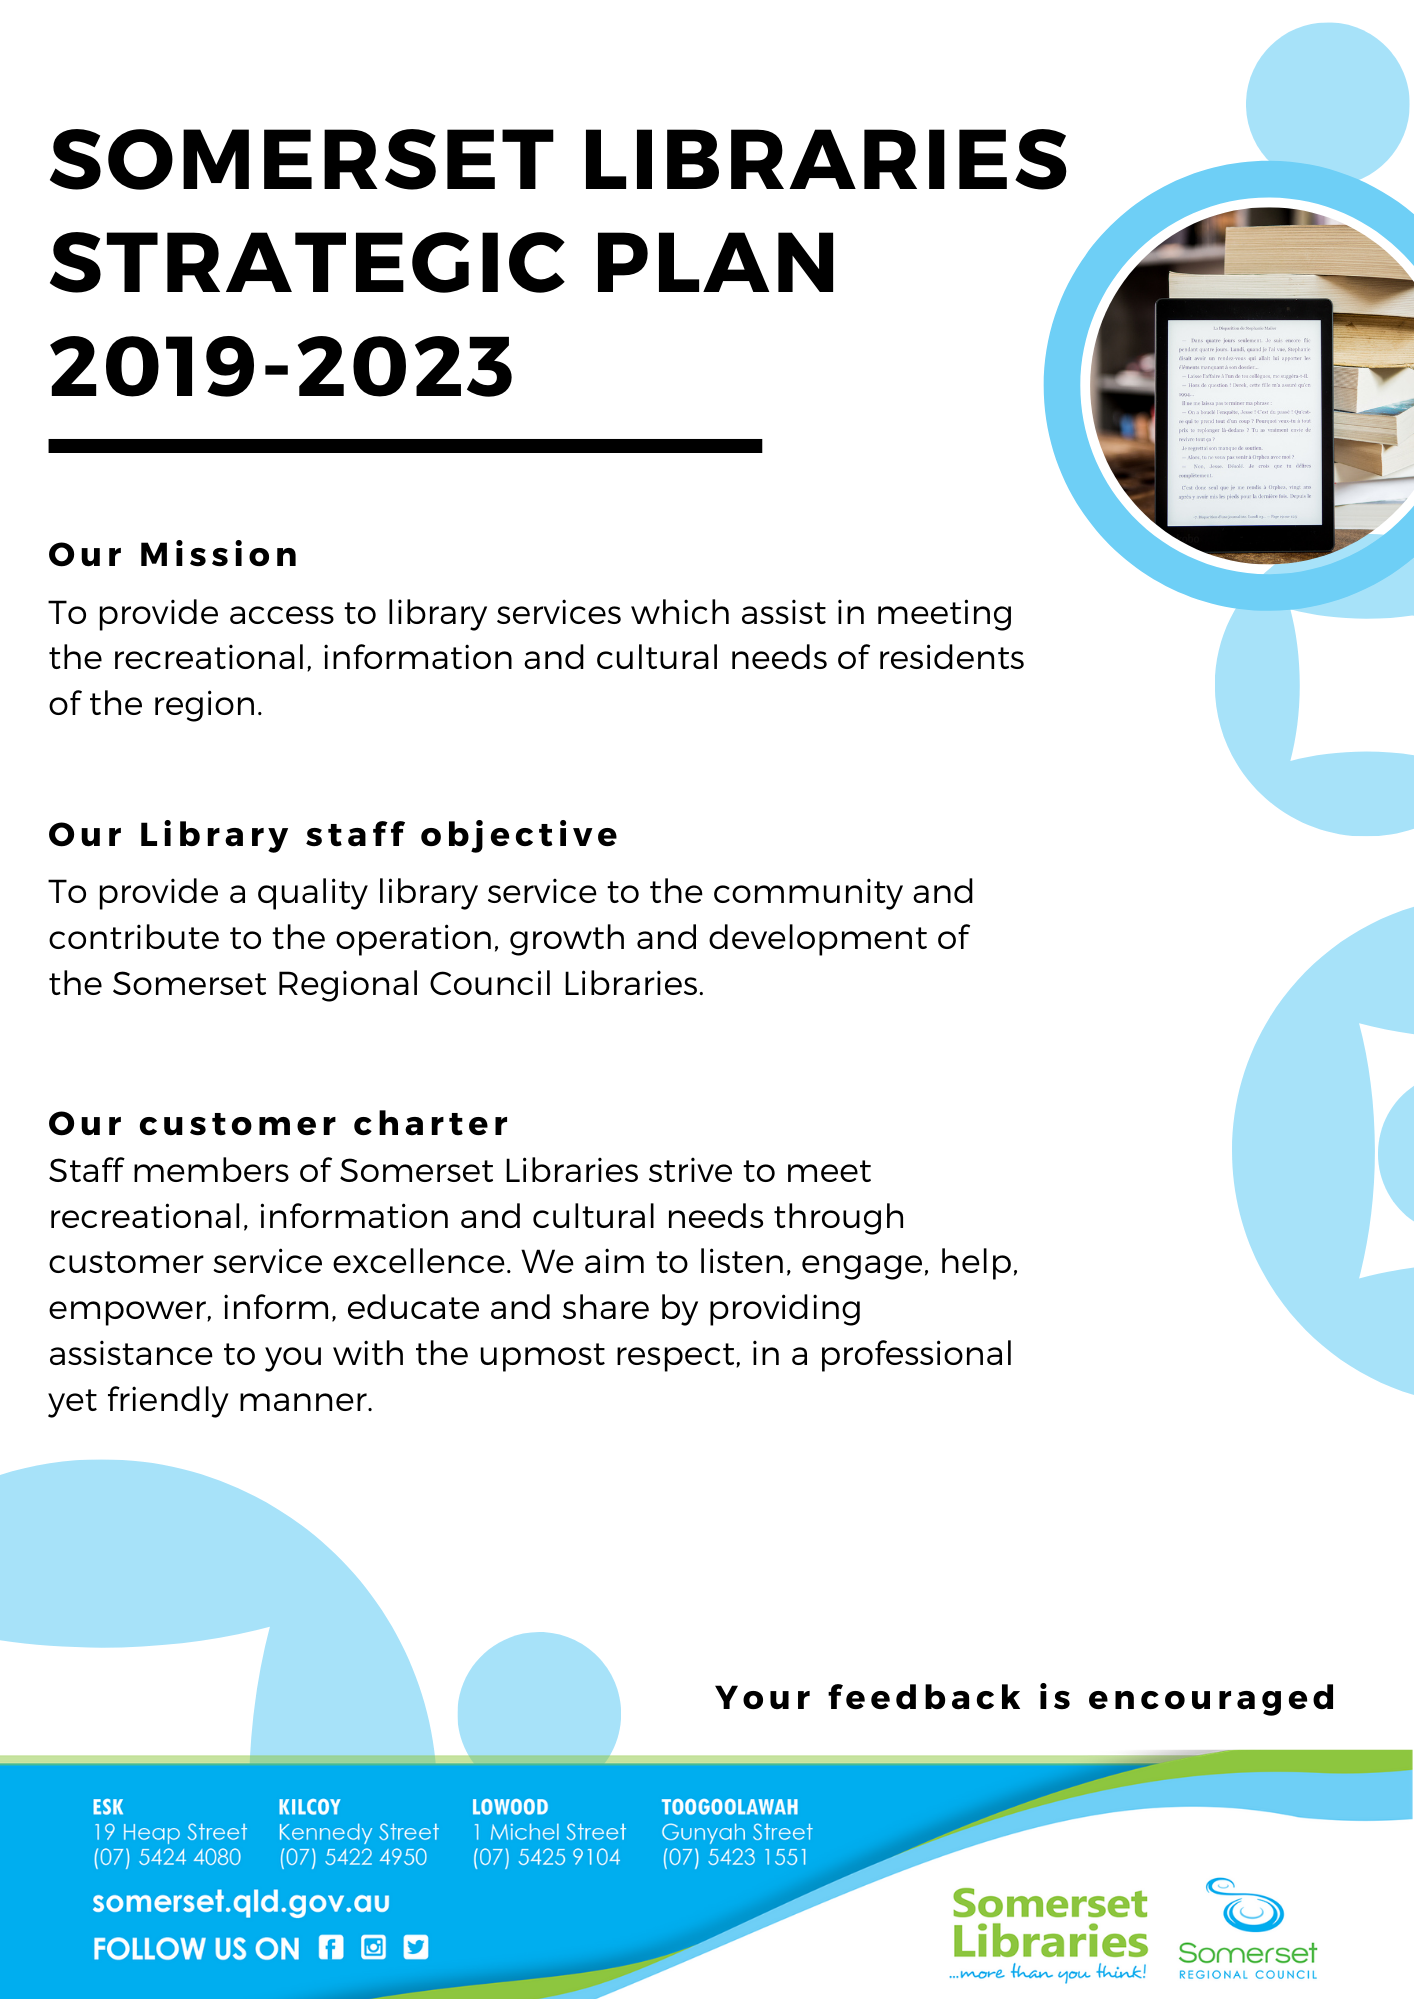 Somerset Libraries Strategic Plan 2019-2023 Our Mission: To provide access to library services which assist in meeting the recreational, information and cultural needs of residents of the region. Our Library staff objective: To provide a quality library service to the community and contribute to the operation, growth and development of the Somerset Regional Council Libraries. Our customer charter: Staff members of Somerset Libraries strive to meet recreational, information and cultural needs through customer service excellence. We aim to listen, engage, help, empower, inform, educate and share by providing assistance to you with the upmost respect, in a professional yet friendly manner.